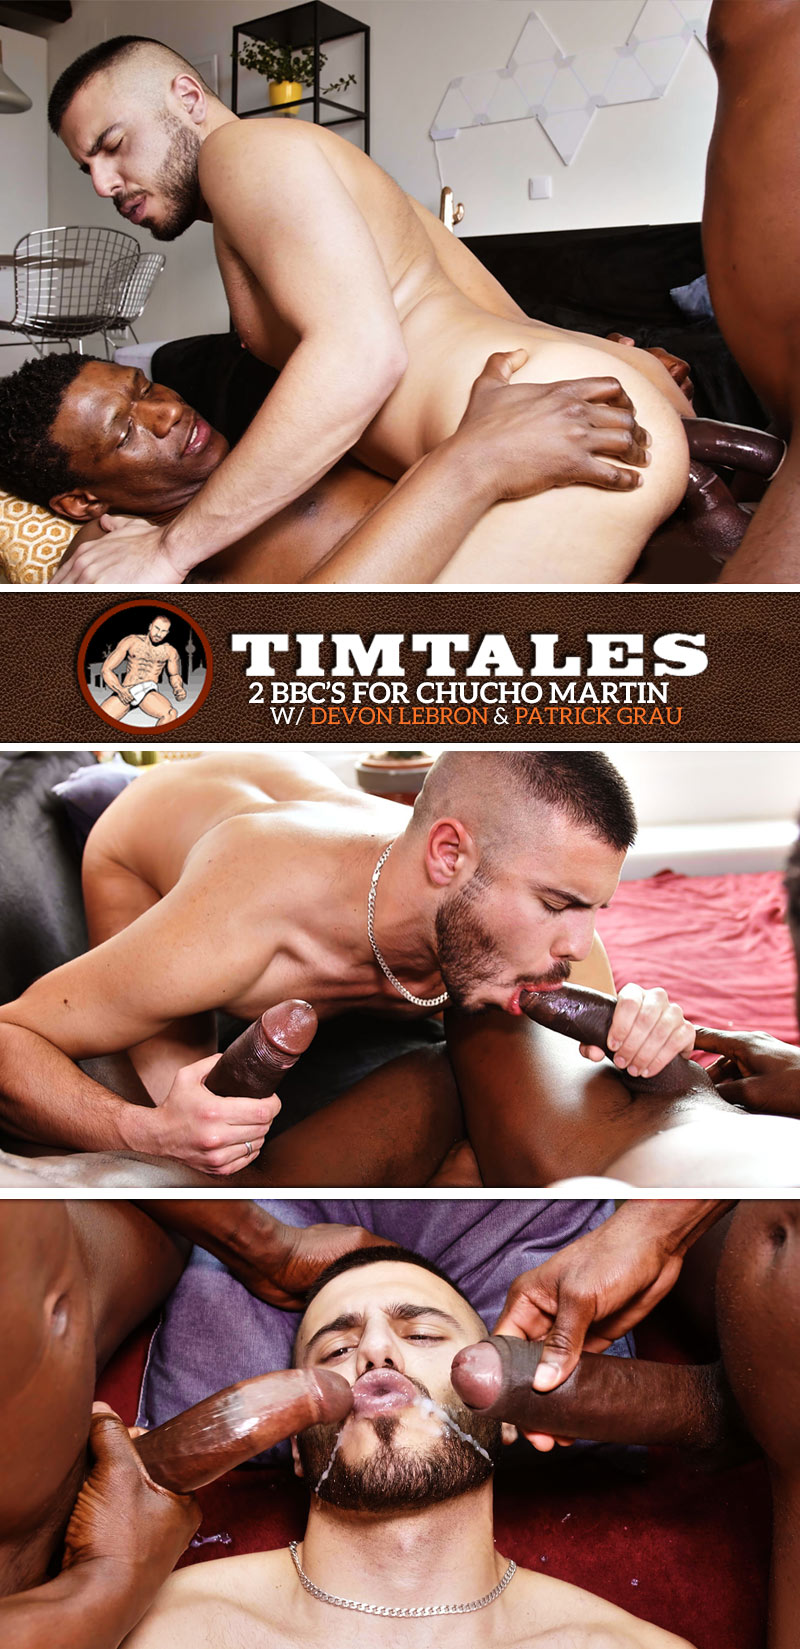 2 BBCs For Chucho Martin (with Devon Lebron and Patrick Grau) at TimTales